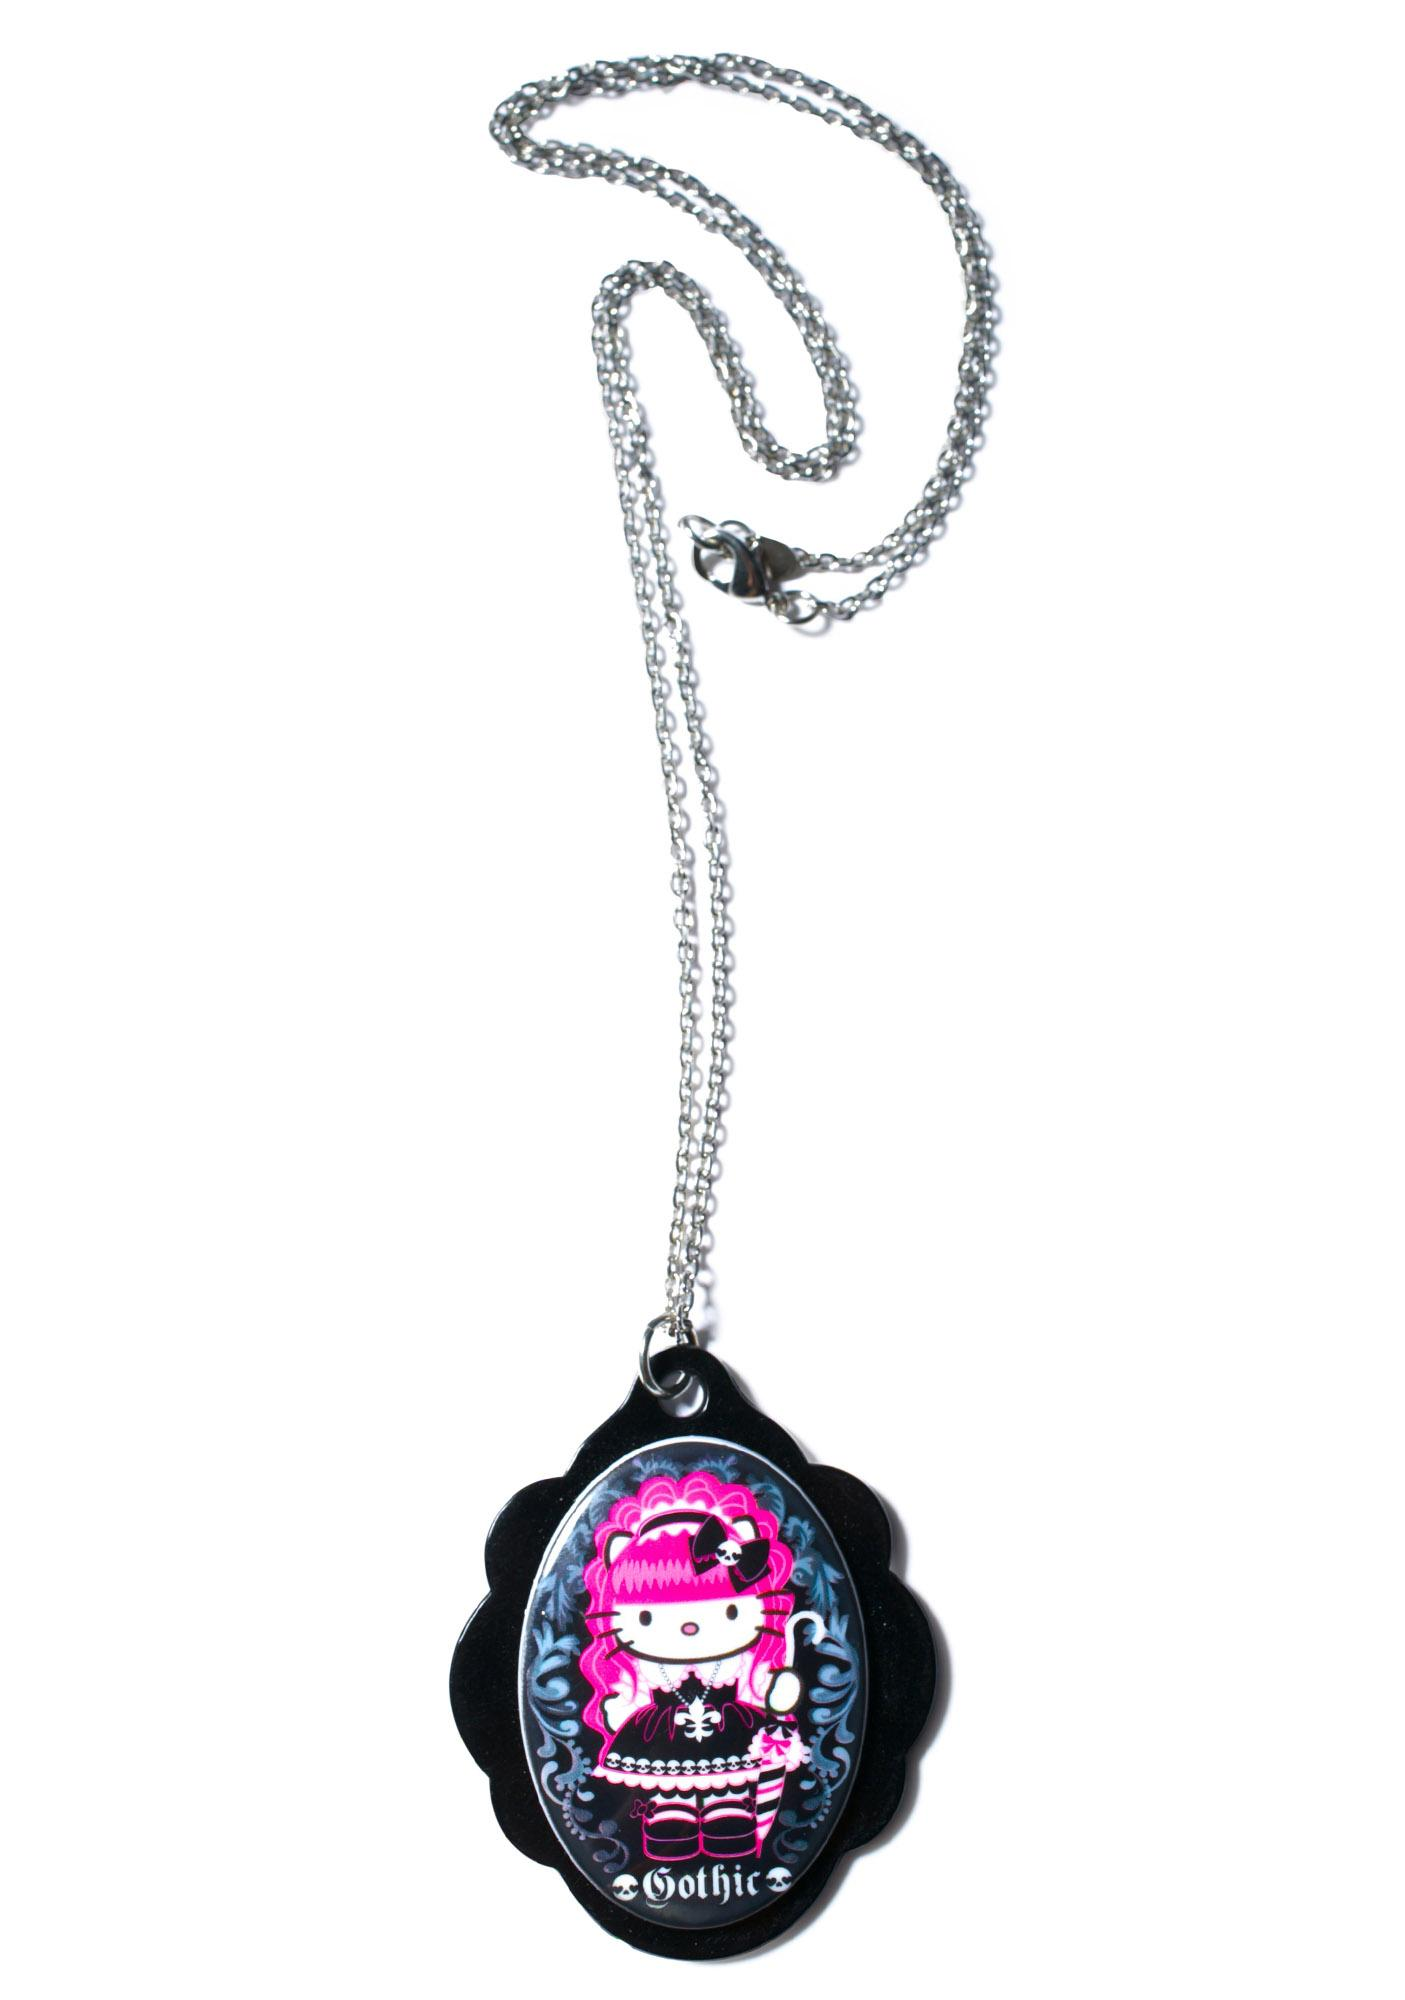 Tarina Tarantino Purrfection Baroque Necklace